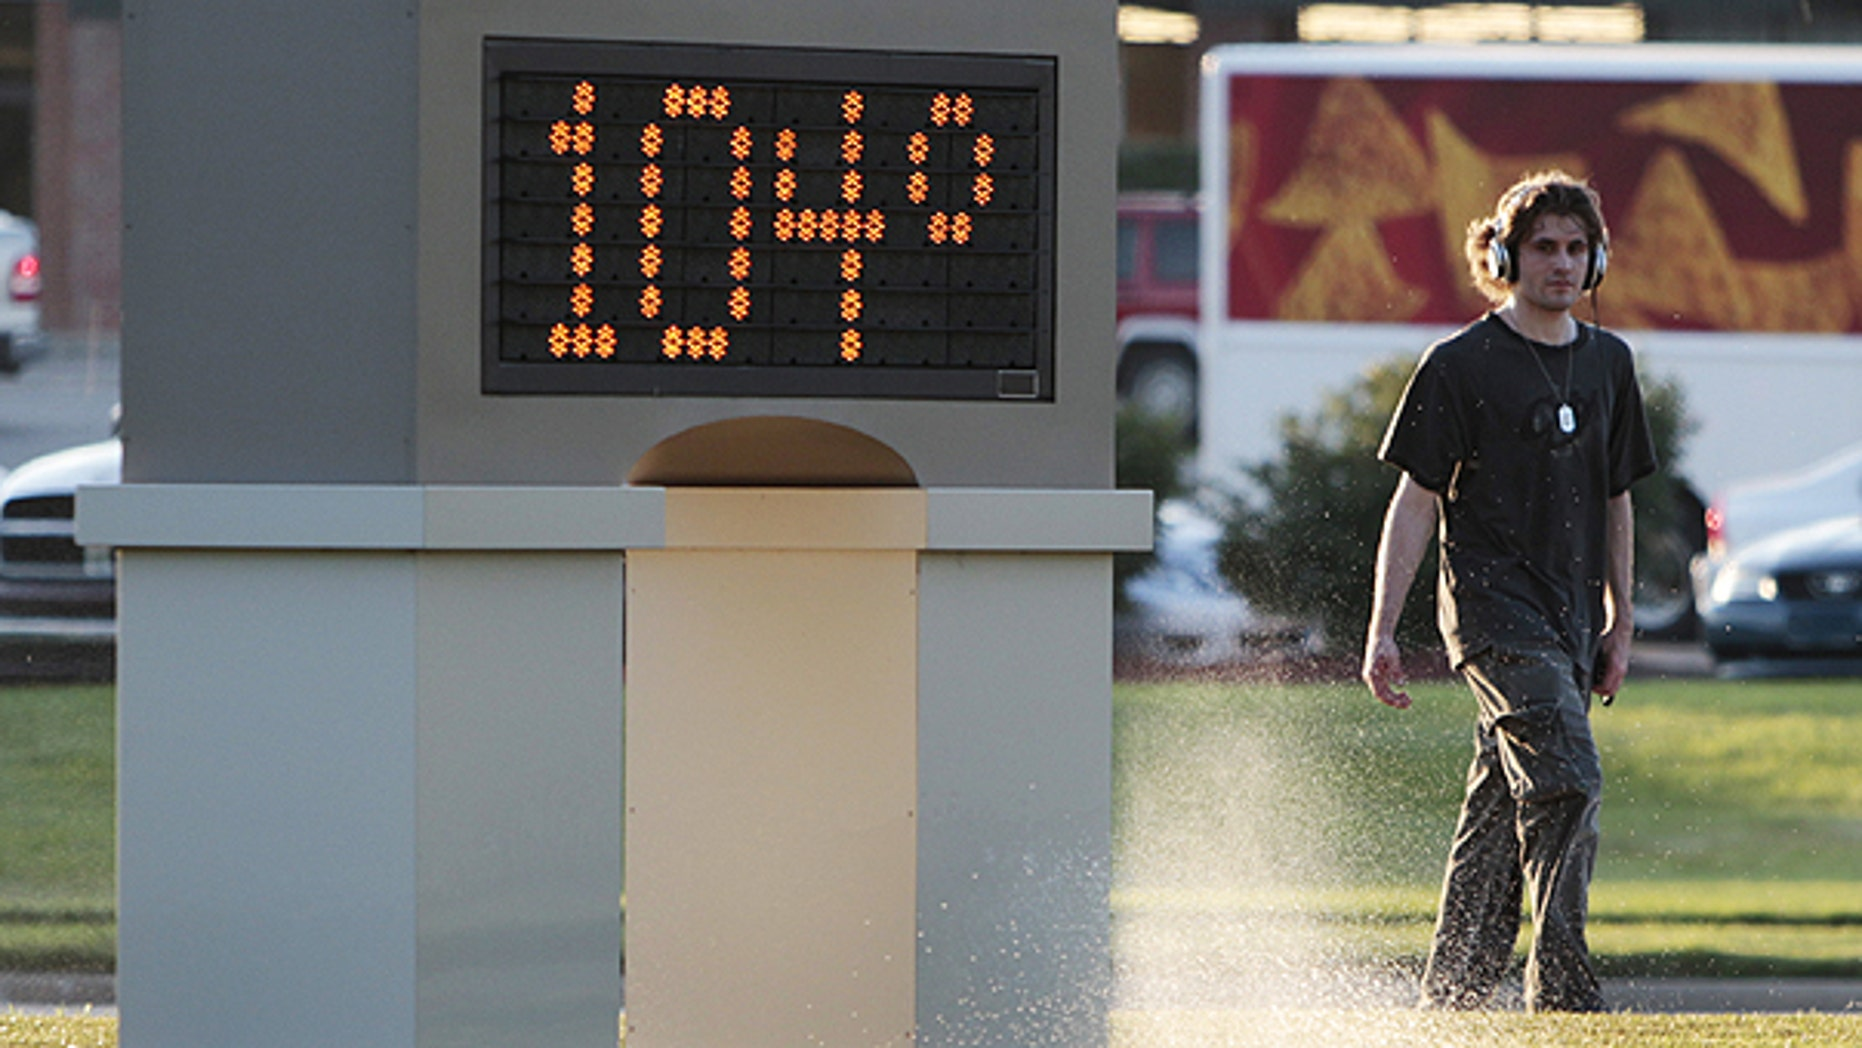 July 11: An unidentified pedestrian walks past a time and temperature sign in Lawrence, Kan.